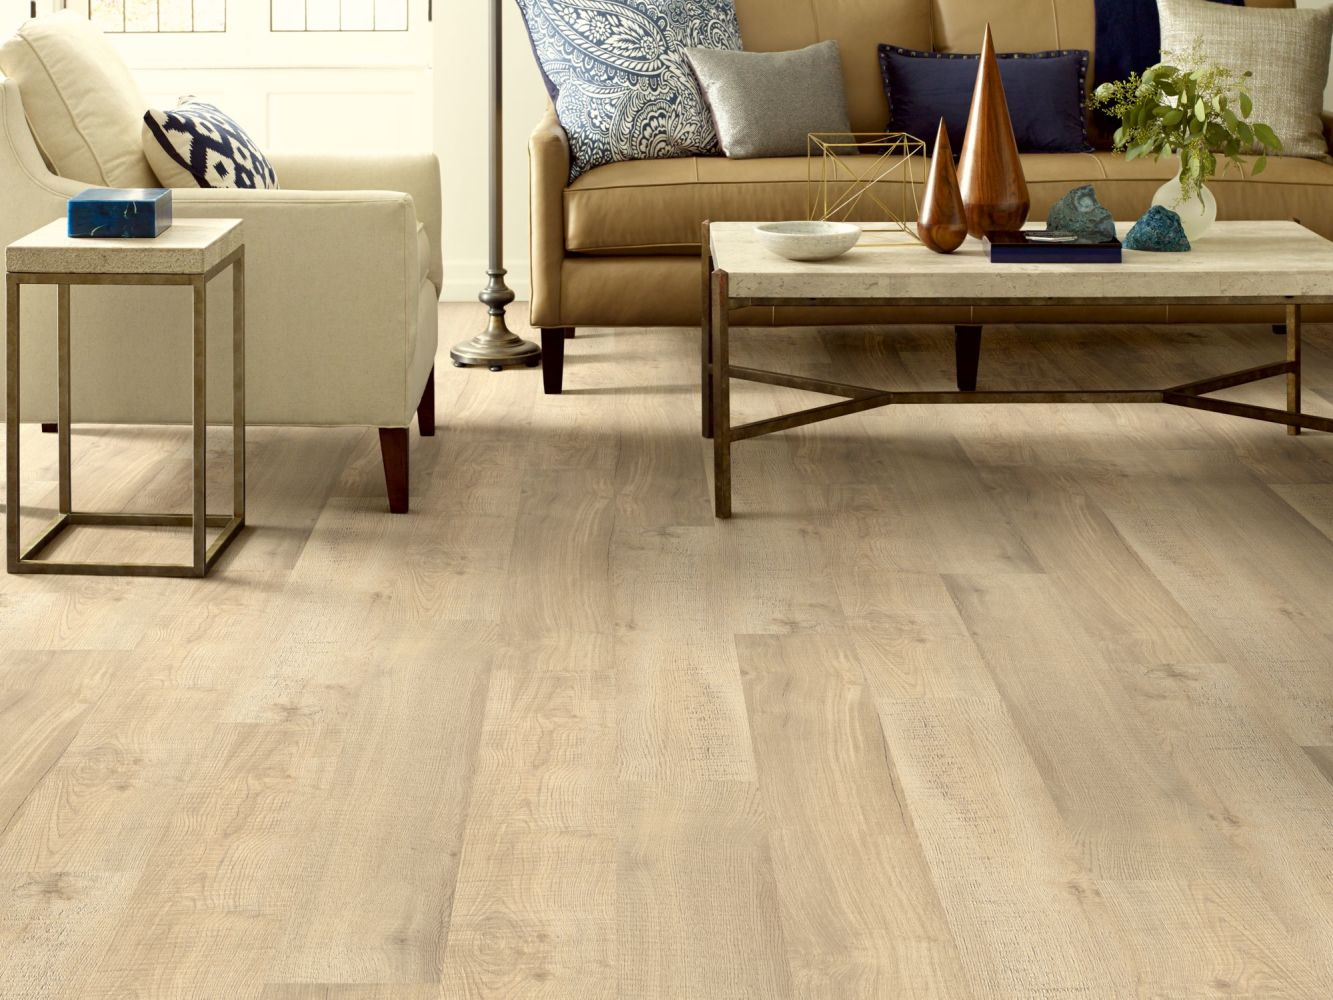 Shaw Floors Resilient Residential Prodigy Hdr Plus Nomad 01066_2038V